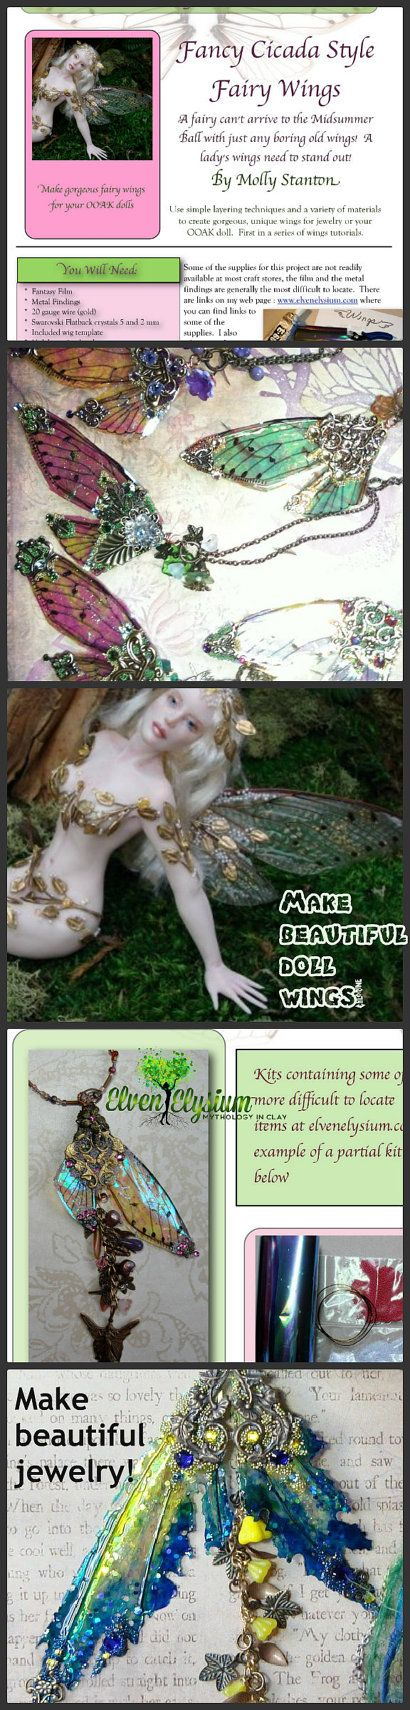 You see fantasy film fairy wings all over polymer clay art dolls and in some jewelry designs. After a while they can start to fade into the